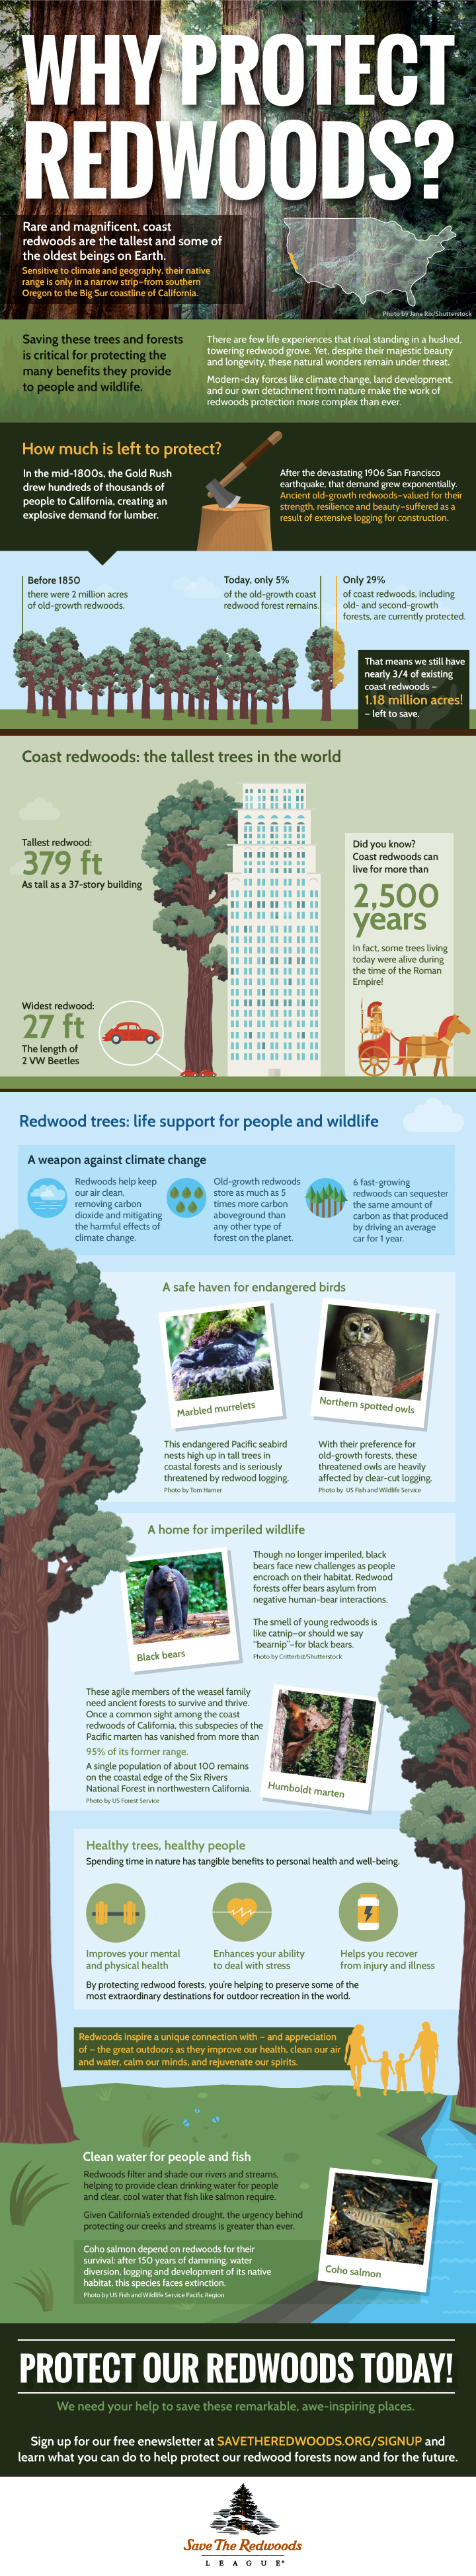 Why Protect Redwoods